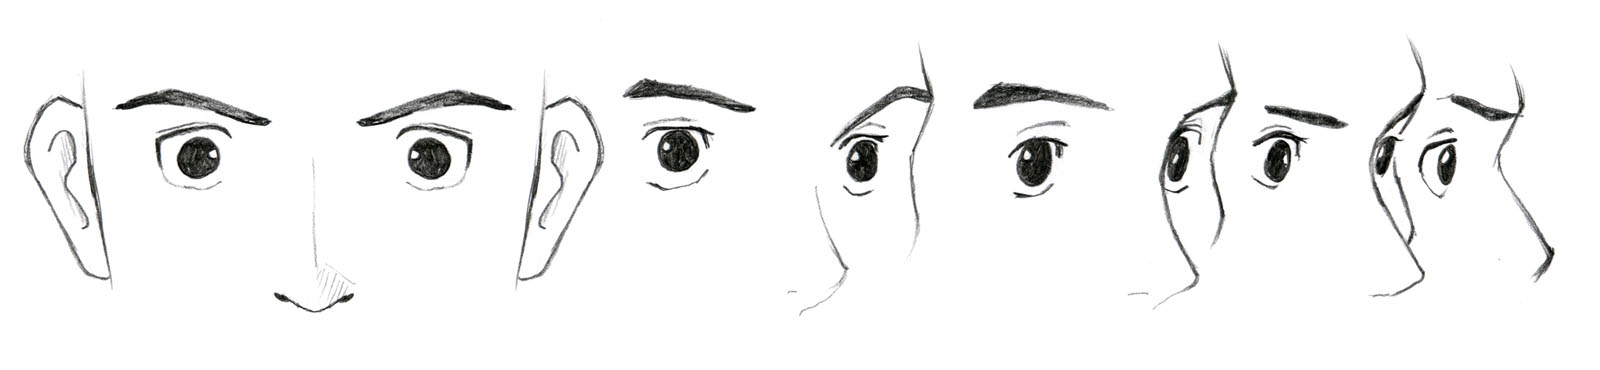 Drawn profile side angle Shifts the eyes above) As